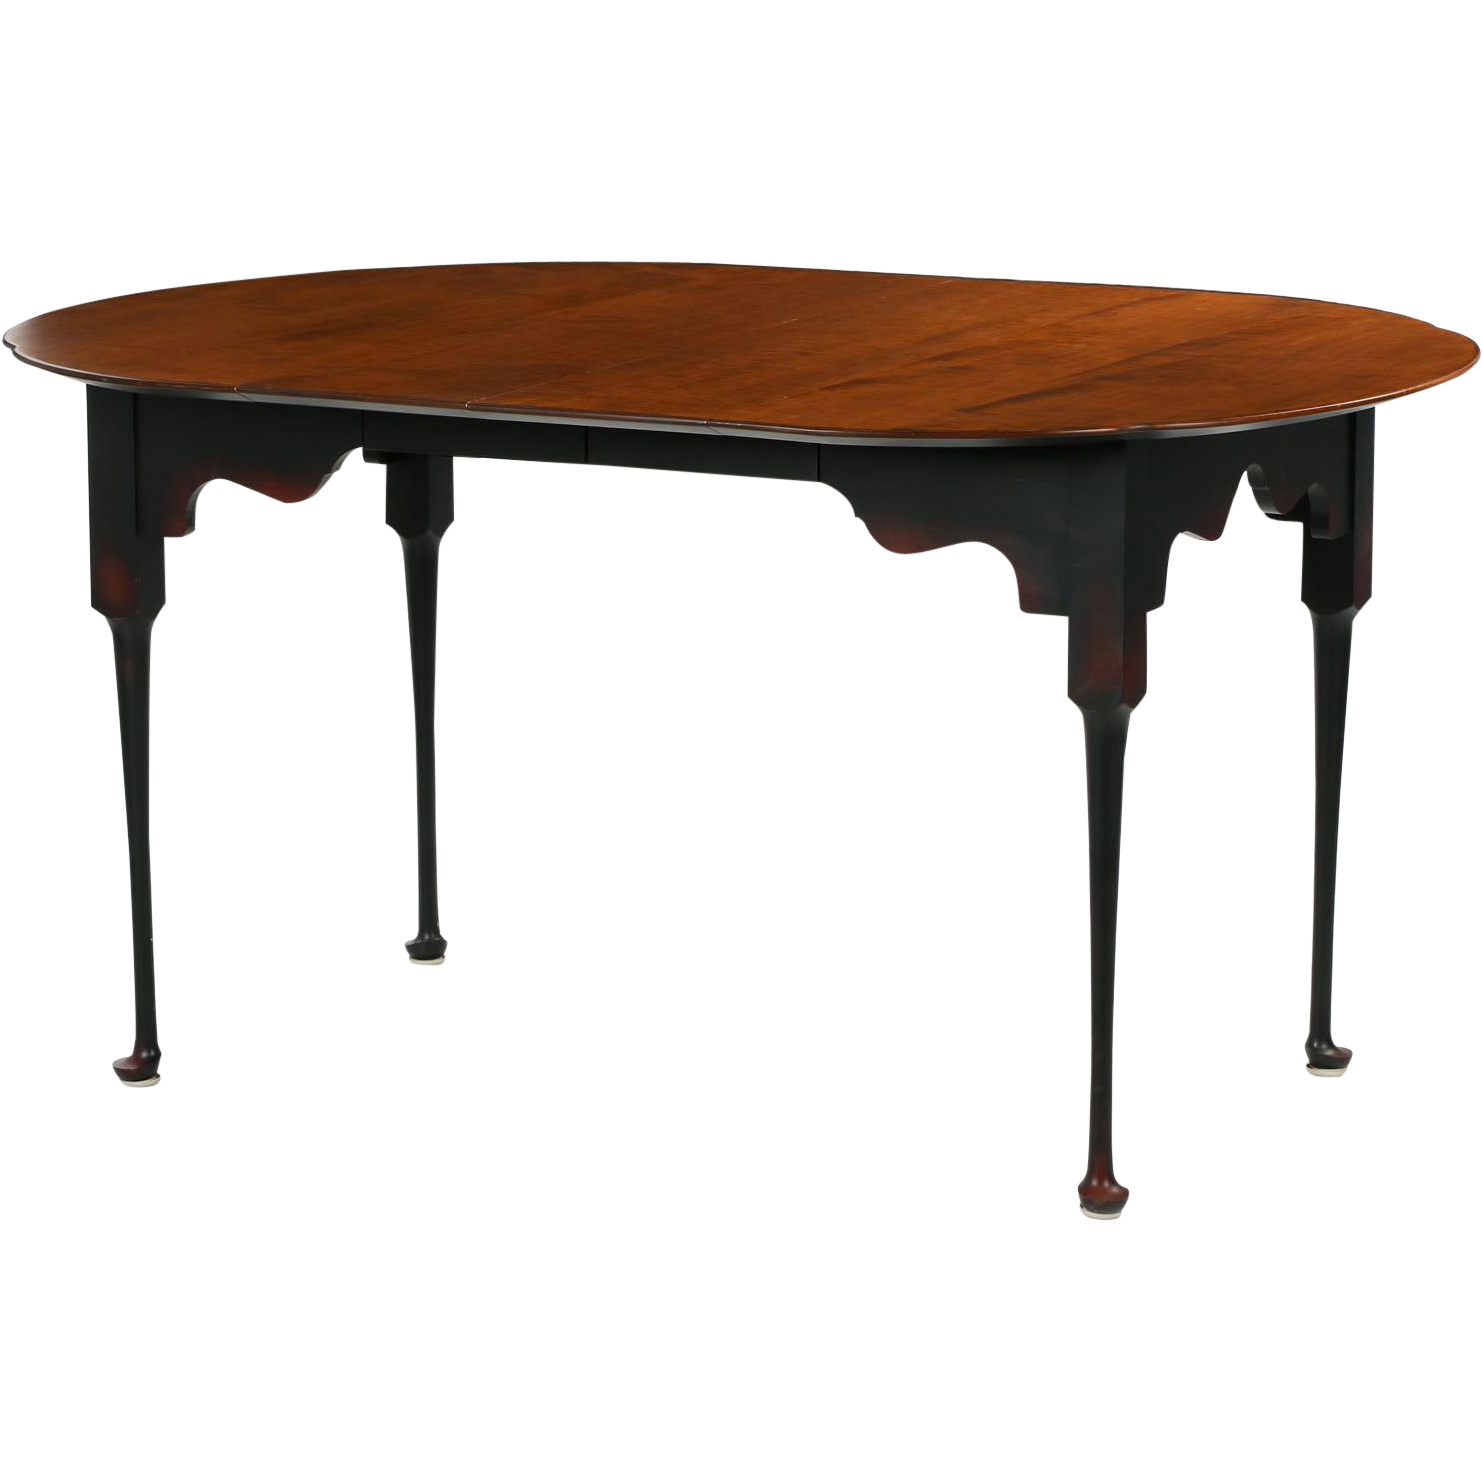 american tiger maple dining table benchmade in queen anne taste 20th from sillafineantiques on. Black Bedroom Furniture Sets. Home Design Ideas